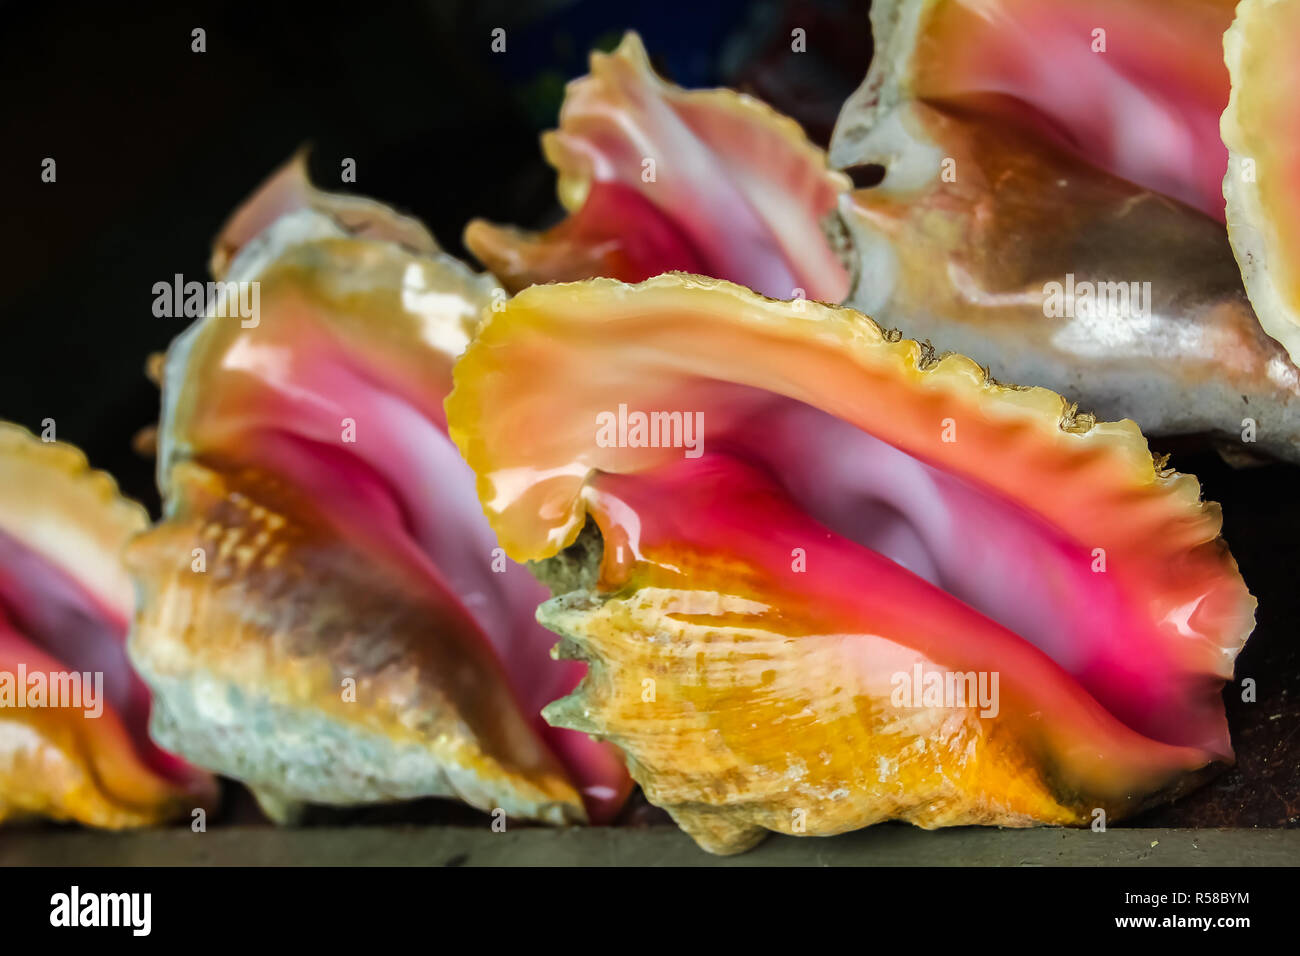 60169e968108 Conch sea shell with pearly pink inside lined up for sale at a souvenir shop  in Freeport